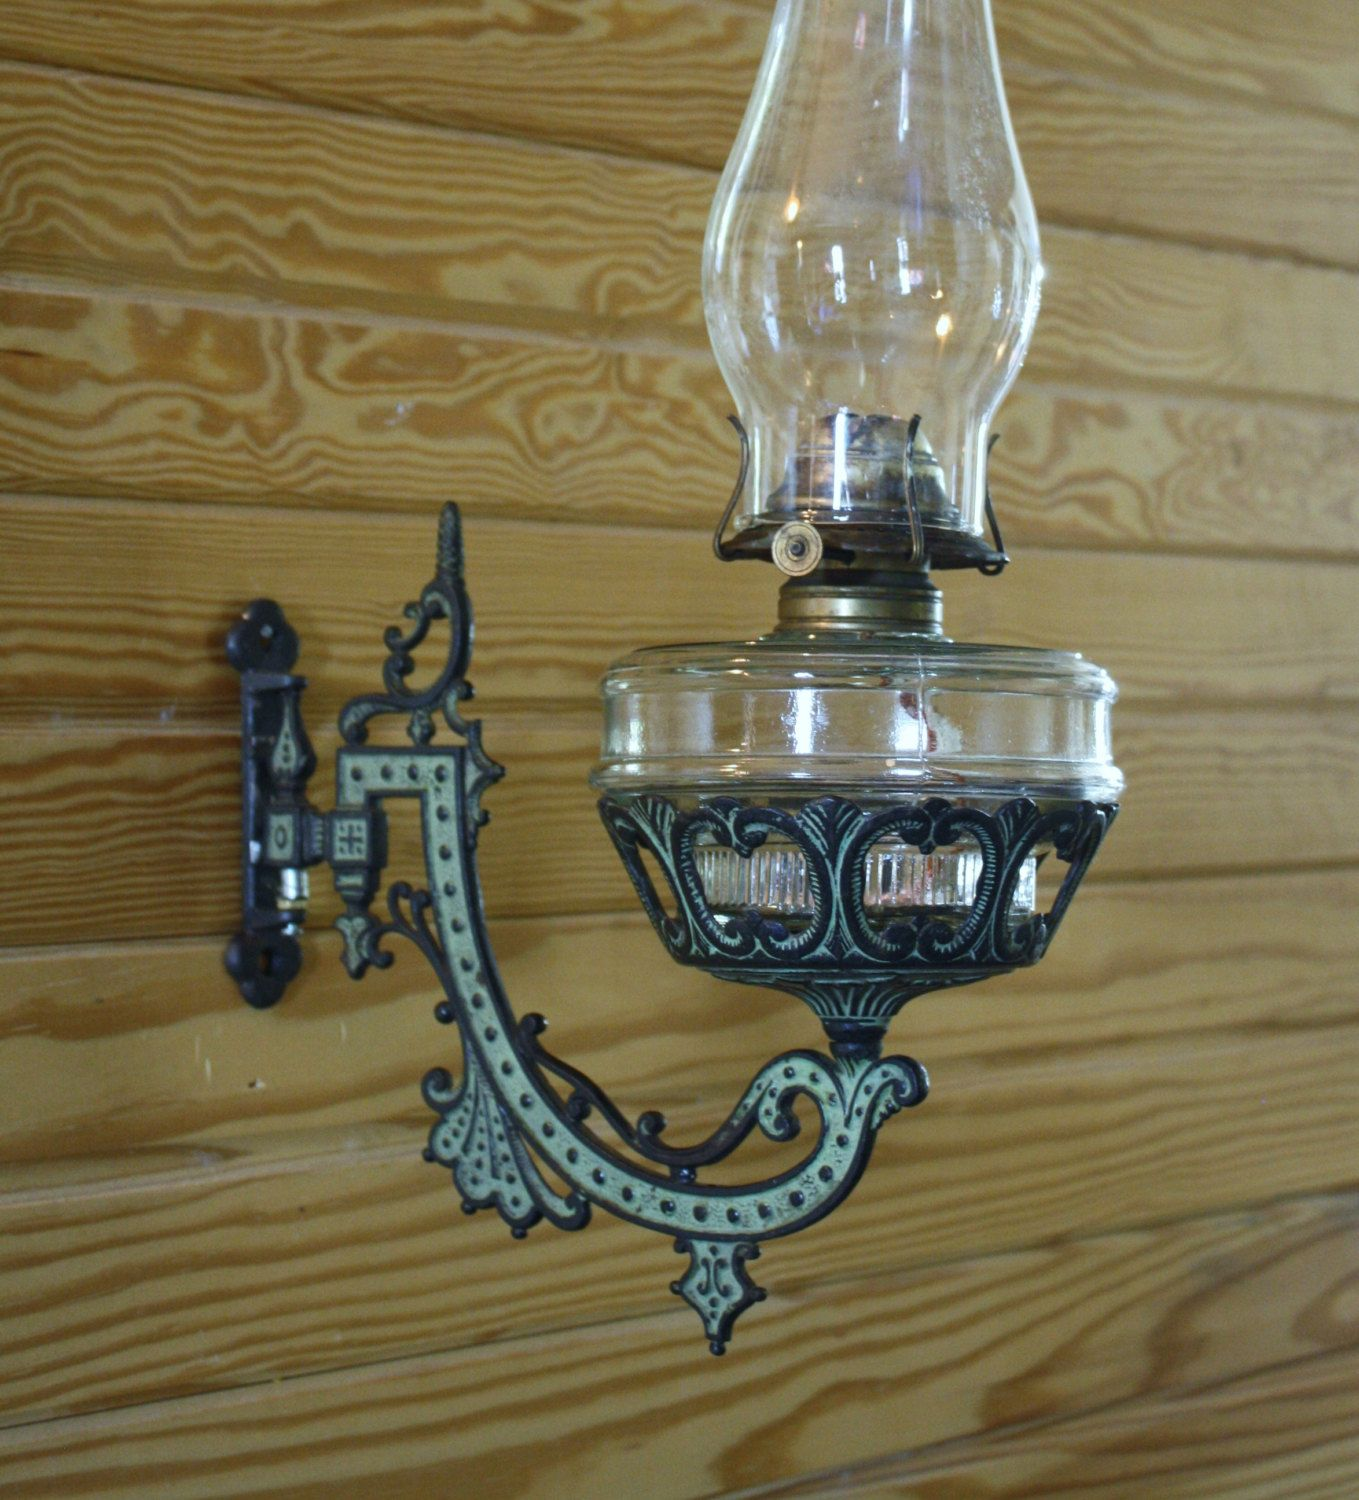 Antique Victorian Style Wall Sconce Light Fixtures Underwriters Laboratories Brass Type Casting Ye Sconce Light Fixtures Light Fixtures Wall Sconce Lighting